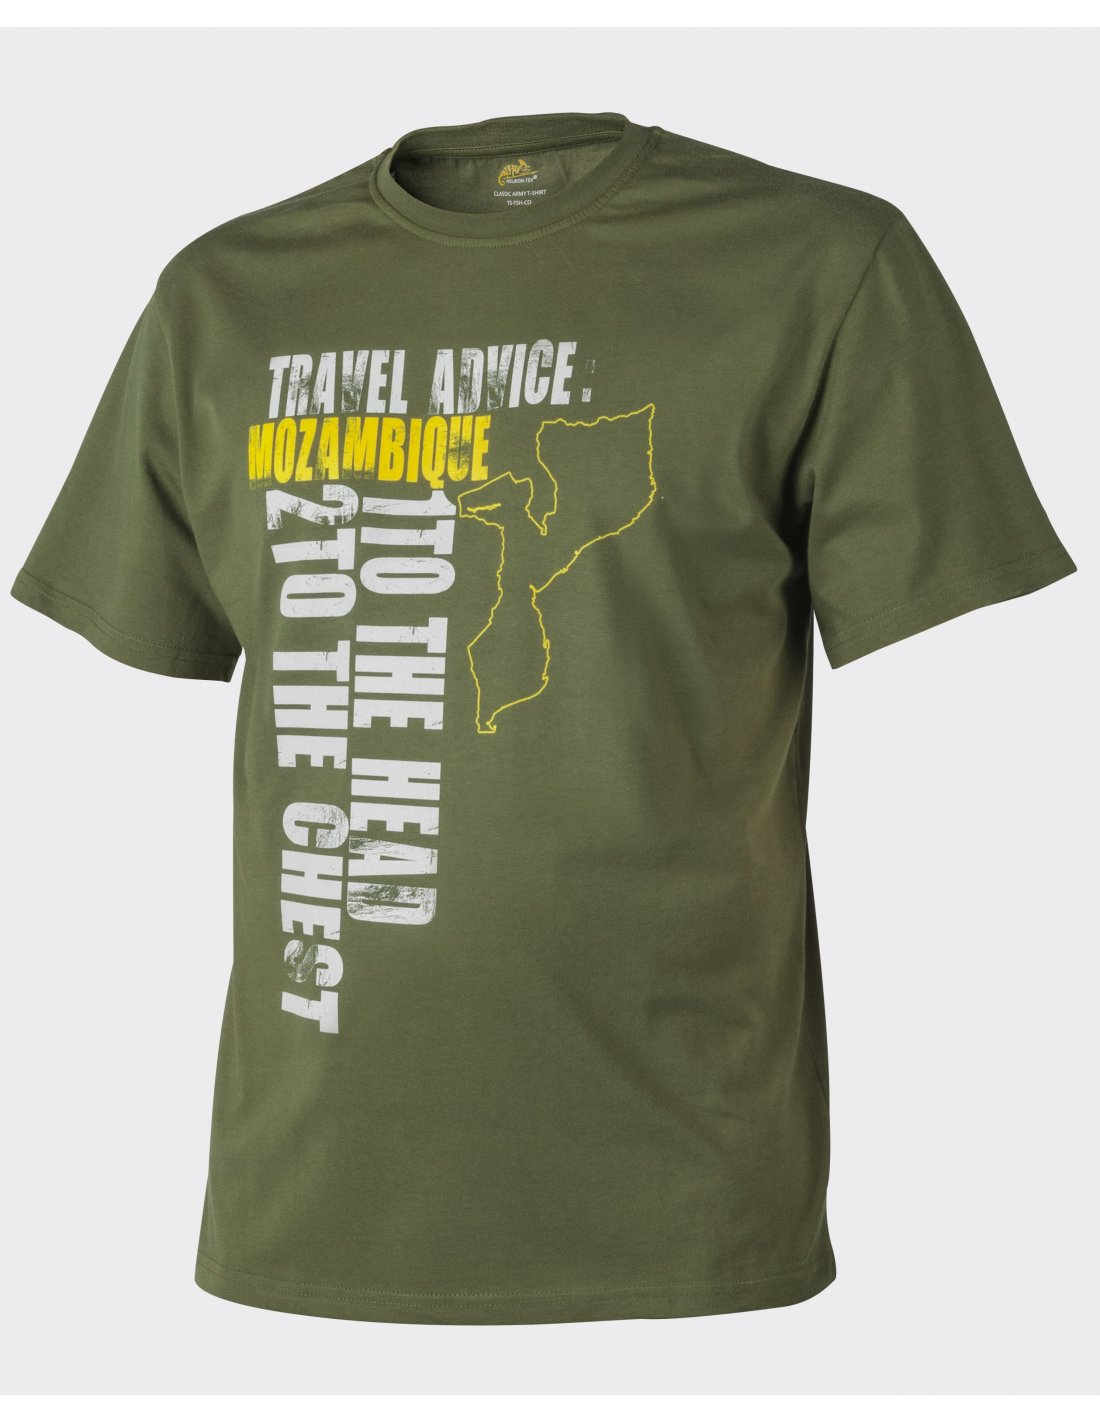 t shirt travels The instructions for the essay were as follows: these are quiz questions that need to be answered for international business class there are five questions listed below please answer as thoroughly (about 2 paragraphs each) as can be based on the reading of the book called the travels of a t-shirt in the global economy (pietra rivoli, 2006.